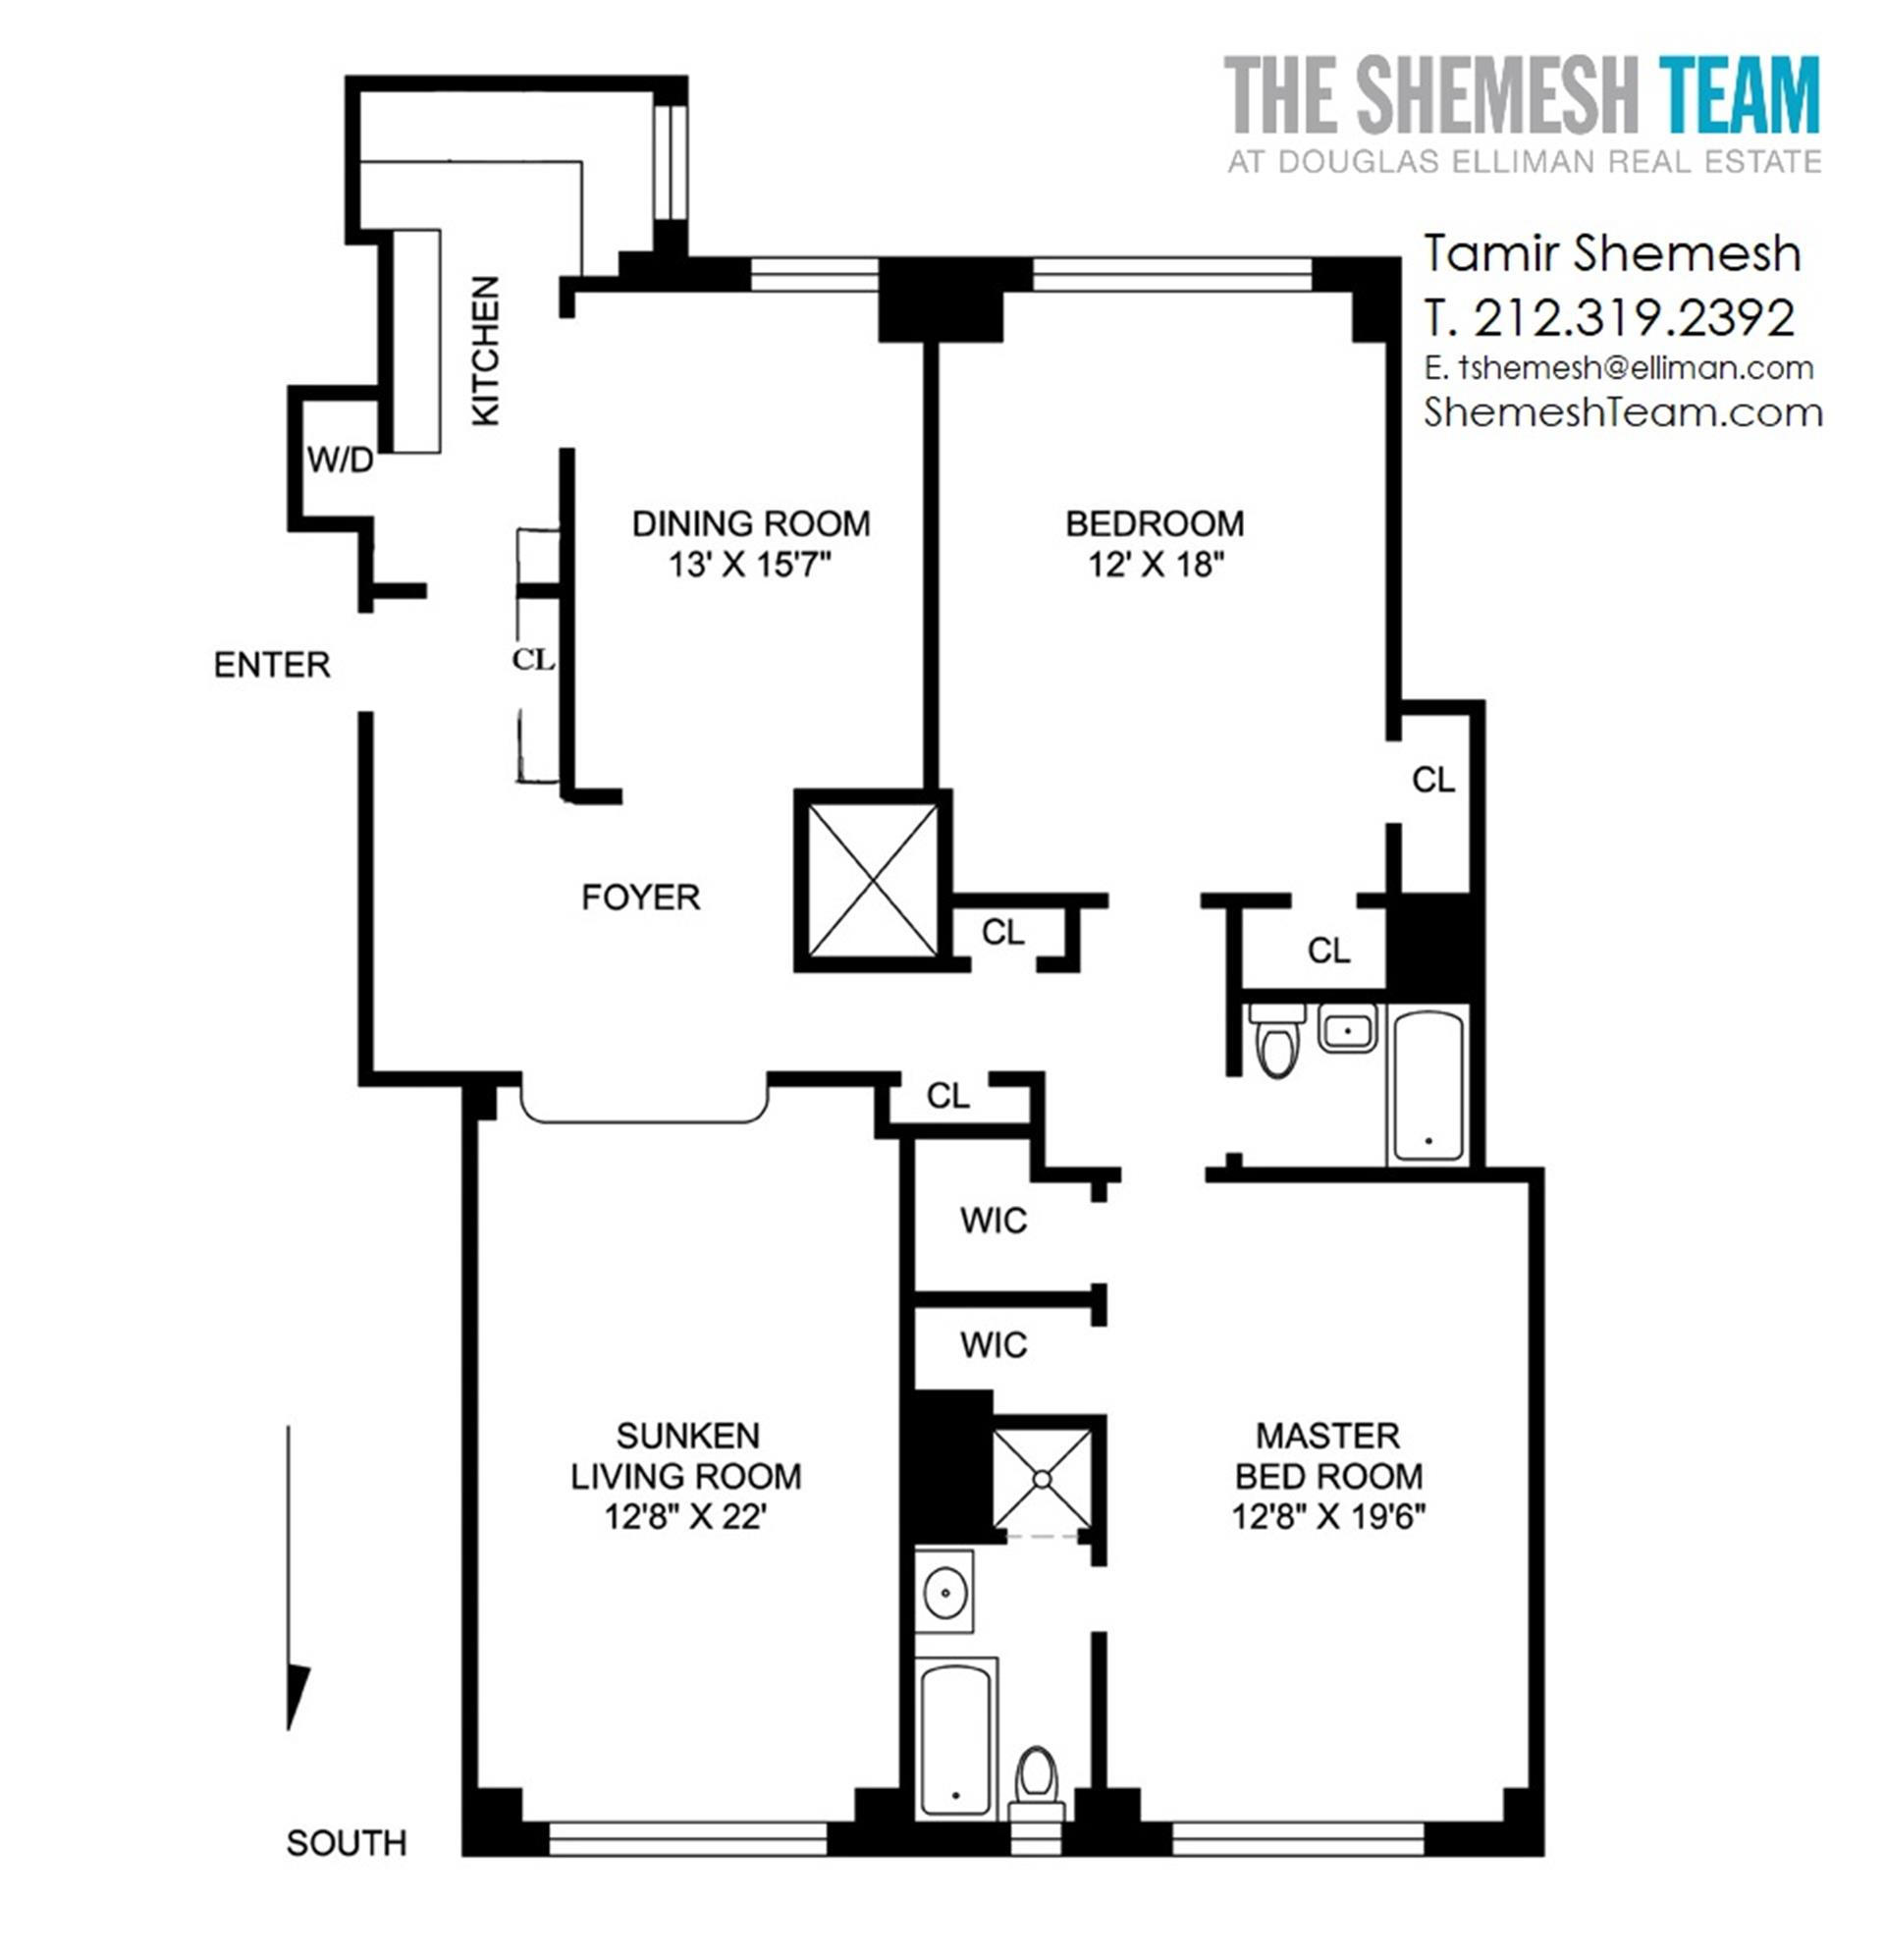 Floor plan of CENTURY, 25 Central Park West, 5I - Lincoln Square, New York